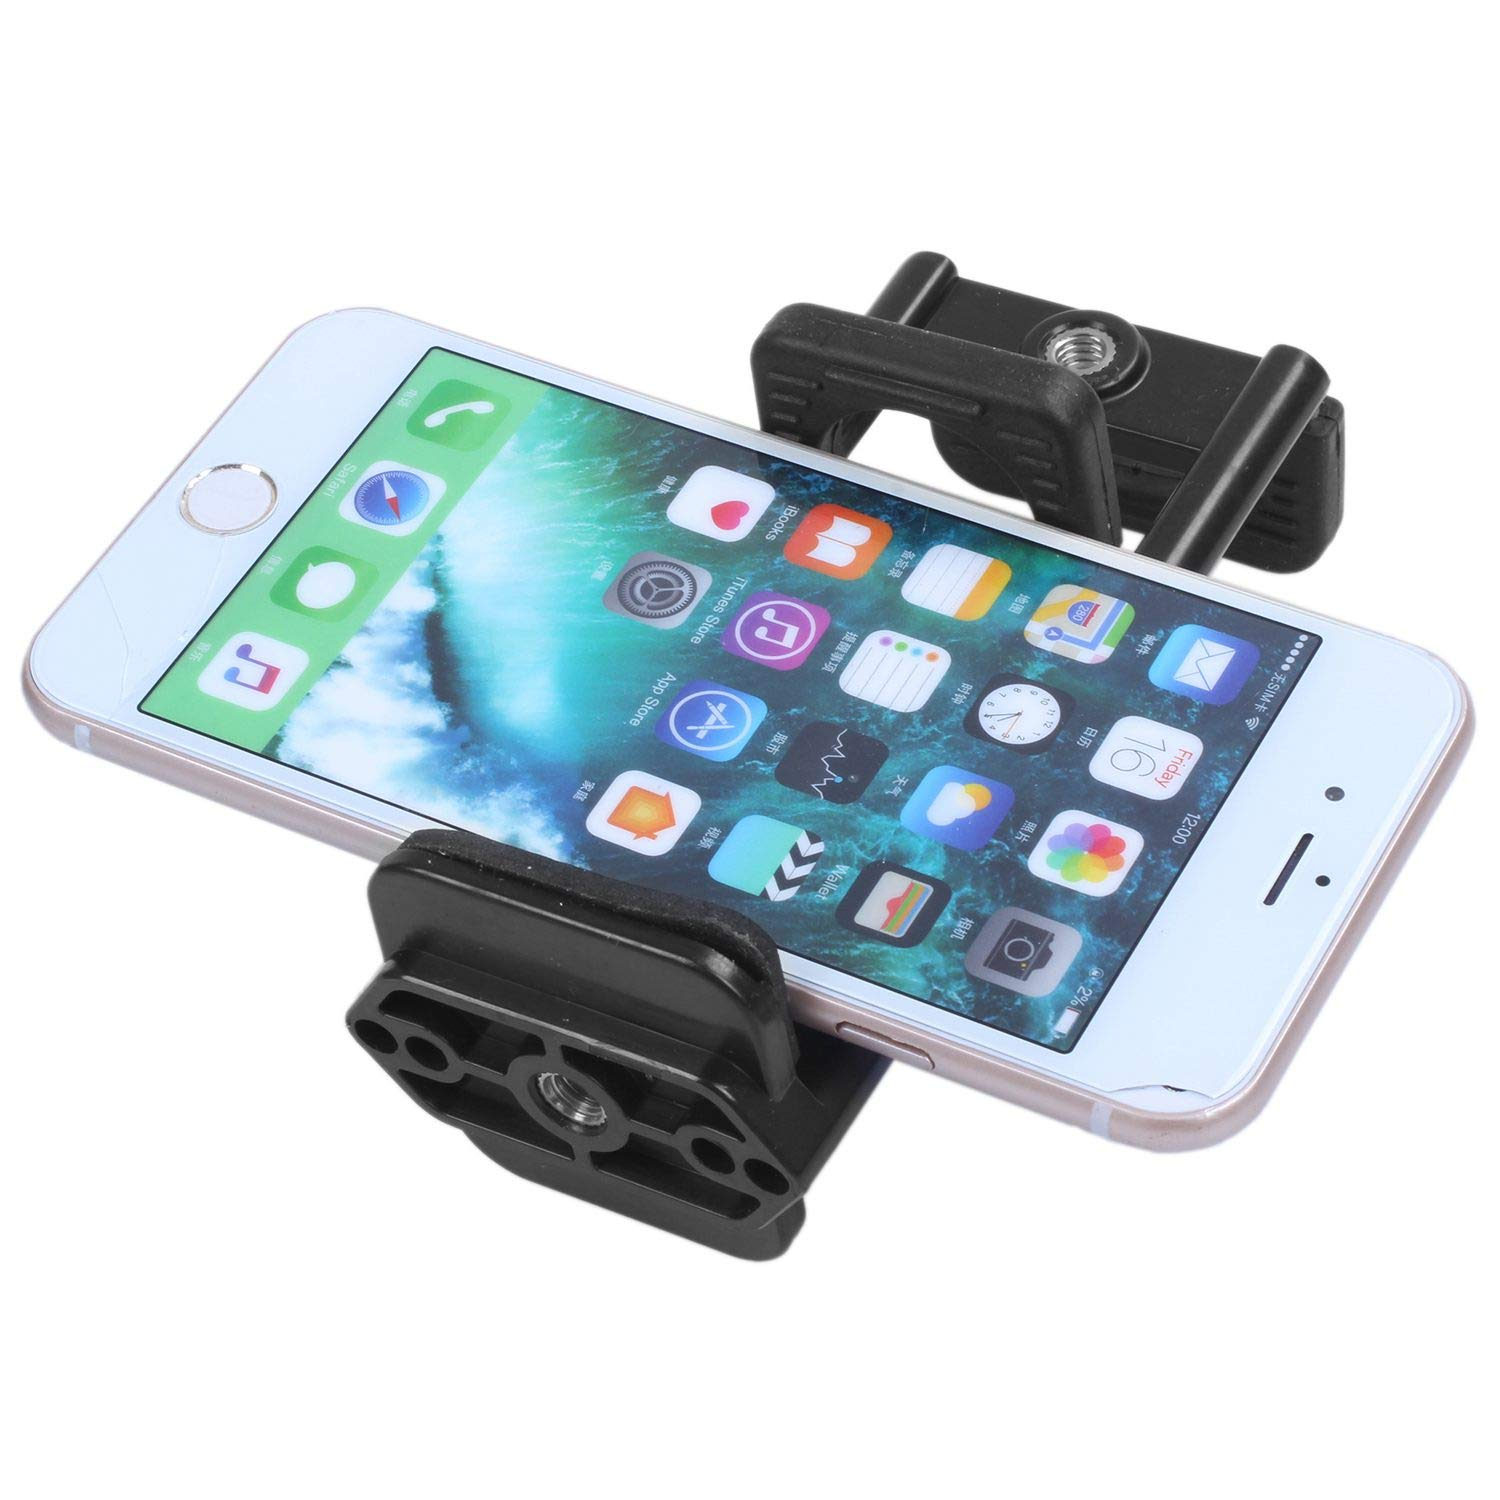 Semoic Universal Tripod Holder Mount Clamp Clip Bracket for Mobile Phone Pad Tablet Camera by Semoic (Image #6)